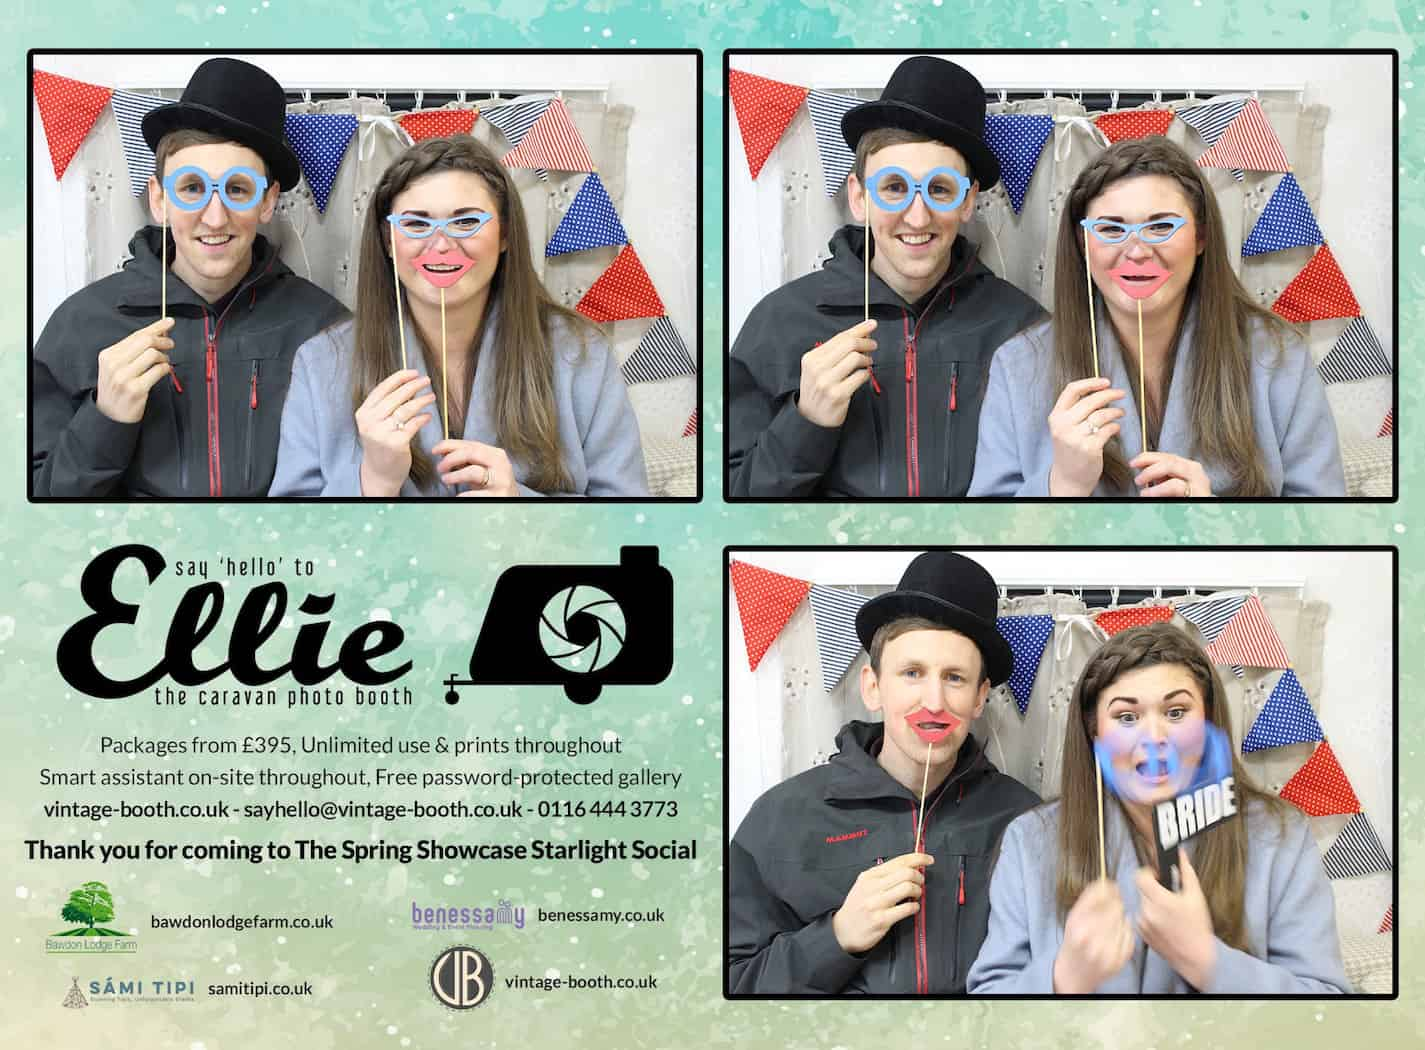 Vintage Photo Booth Sami Tipi Showcase 20162